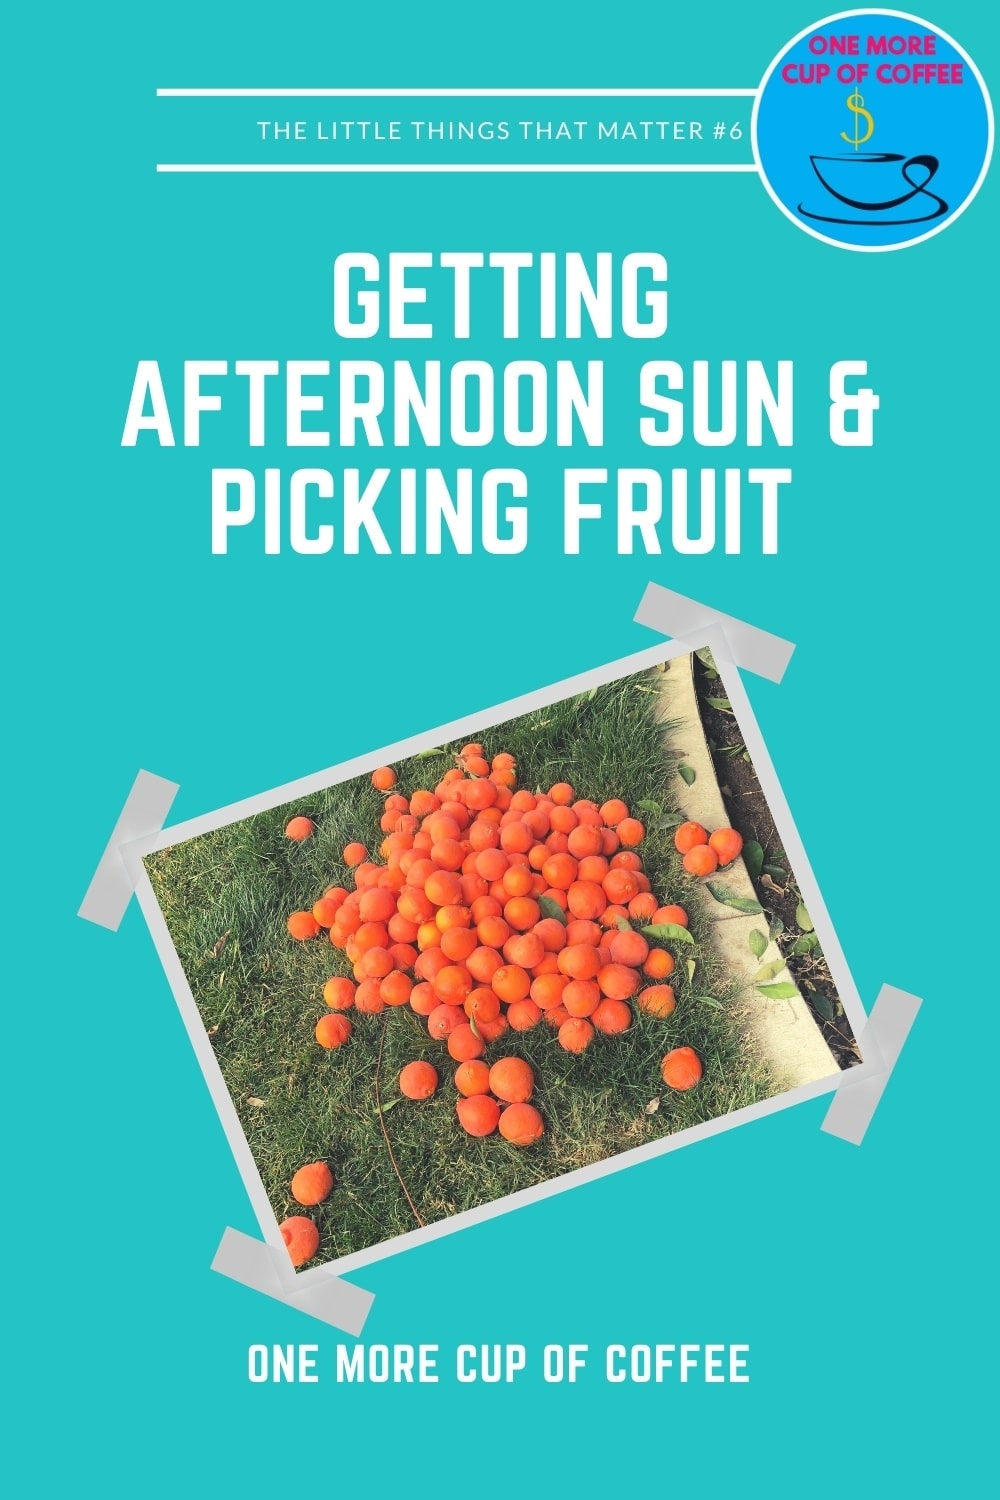 Getting-Afternoon-Sun-Picking-Fruit-_-Little-Things-That-Matter